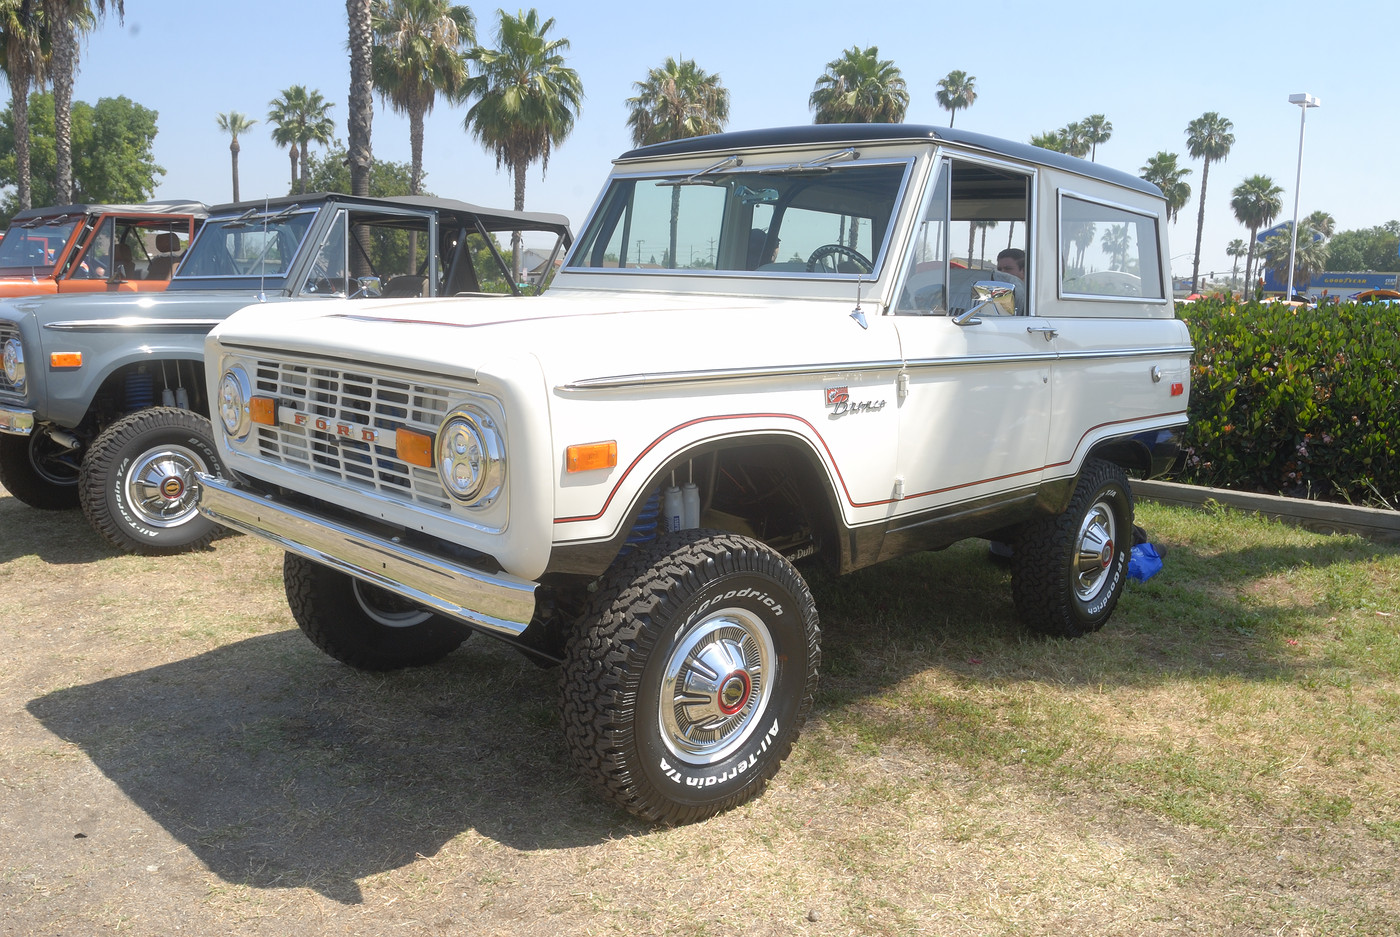 unidentified Ford Bronco DSC 4935